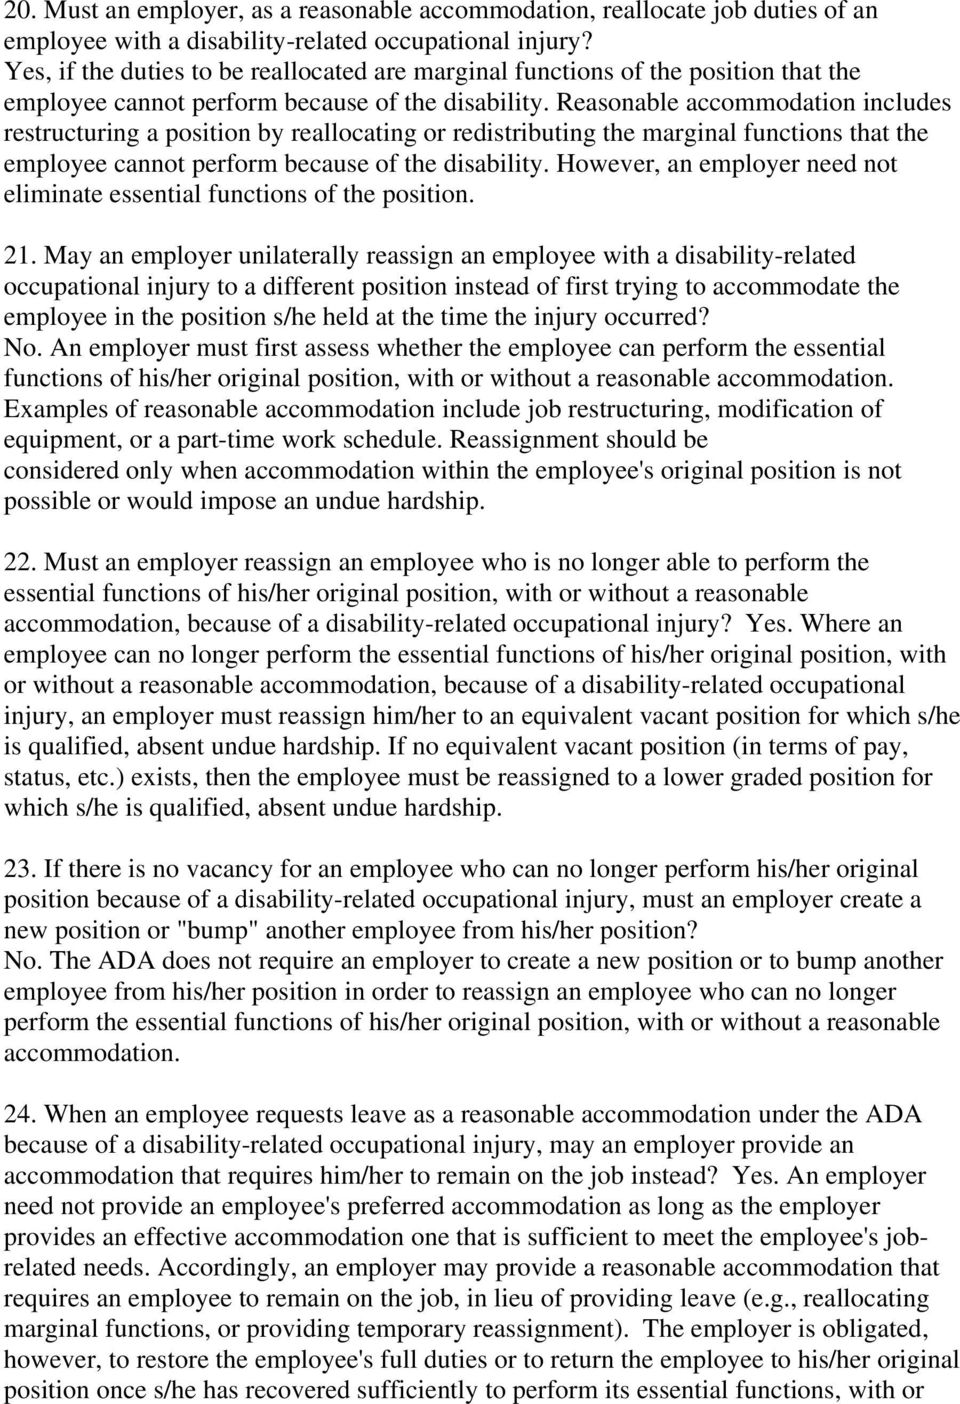 Reasonable accommodation includes restructuring a position by reallocating or redistributing the marginal functions that the employee cannot perform because of the disability.